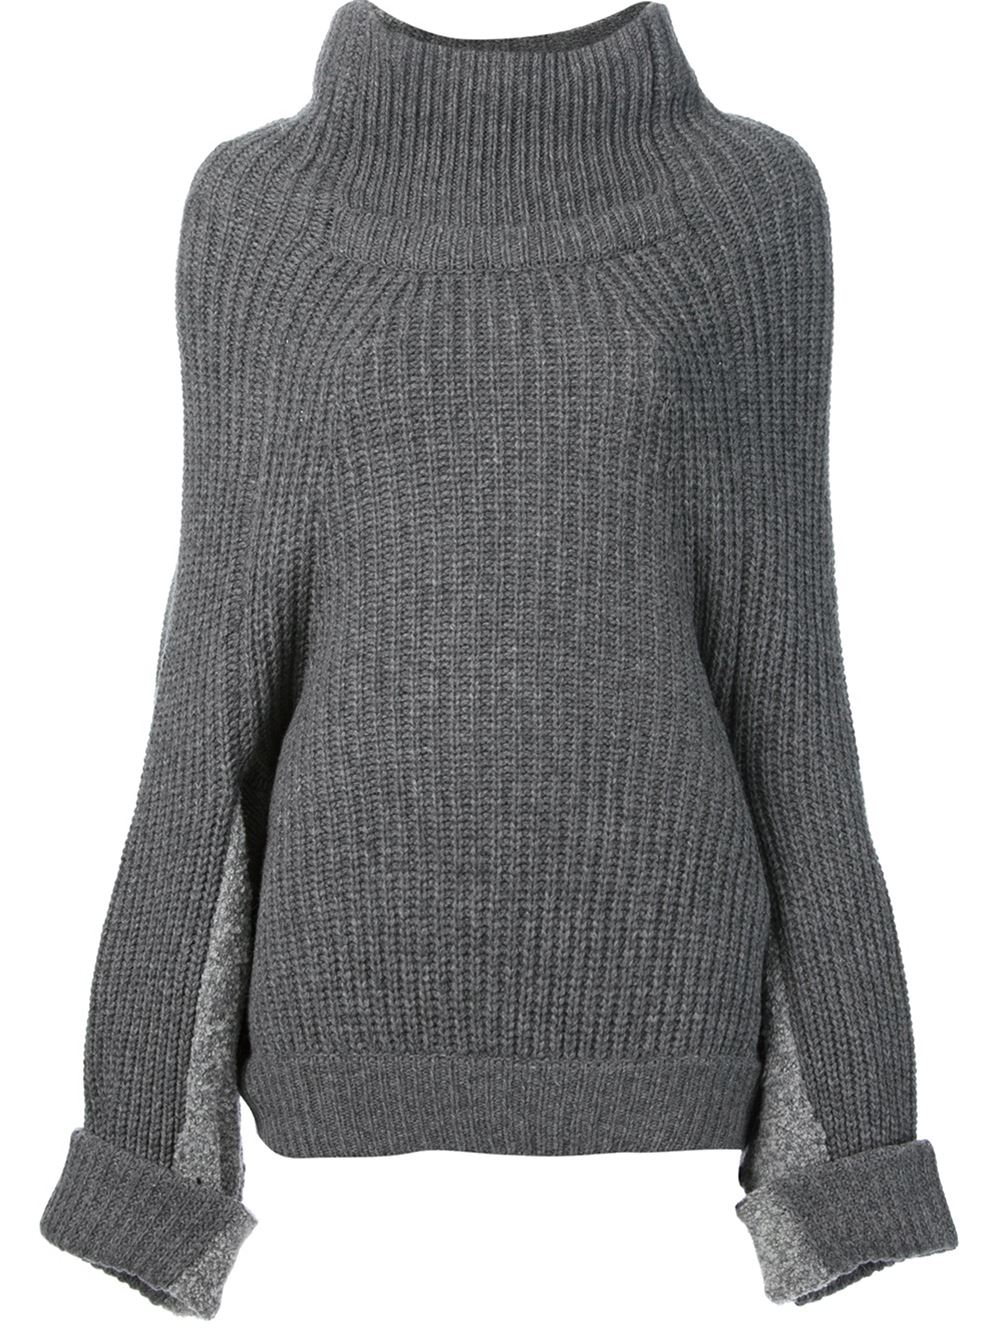 Lyst Toga Pulla Oversized Turtleneck Sweater In Gray